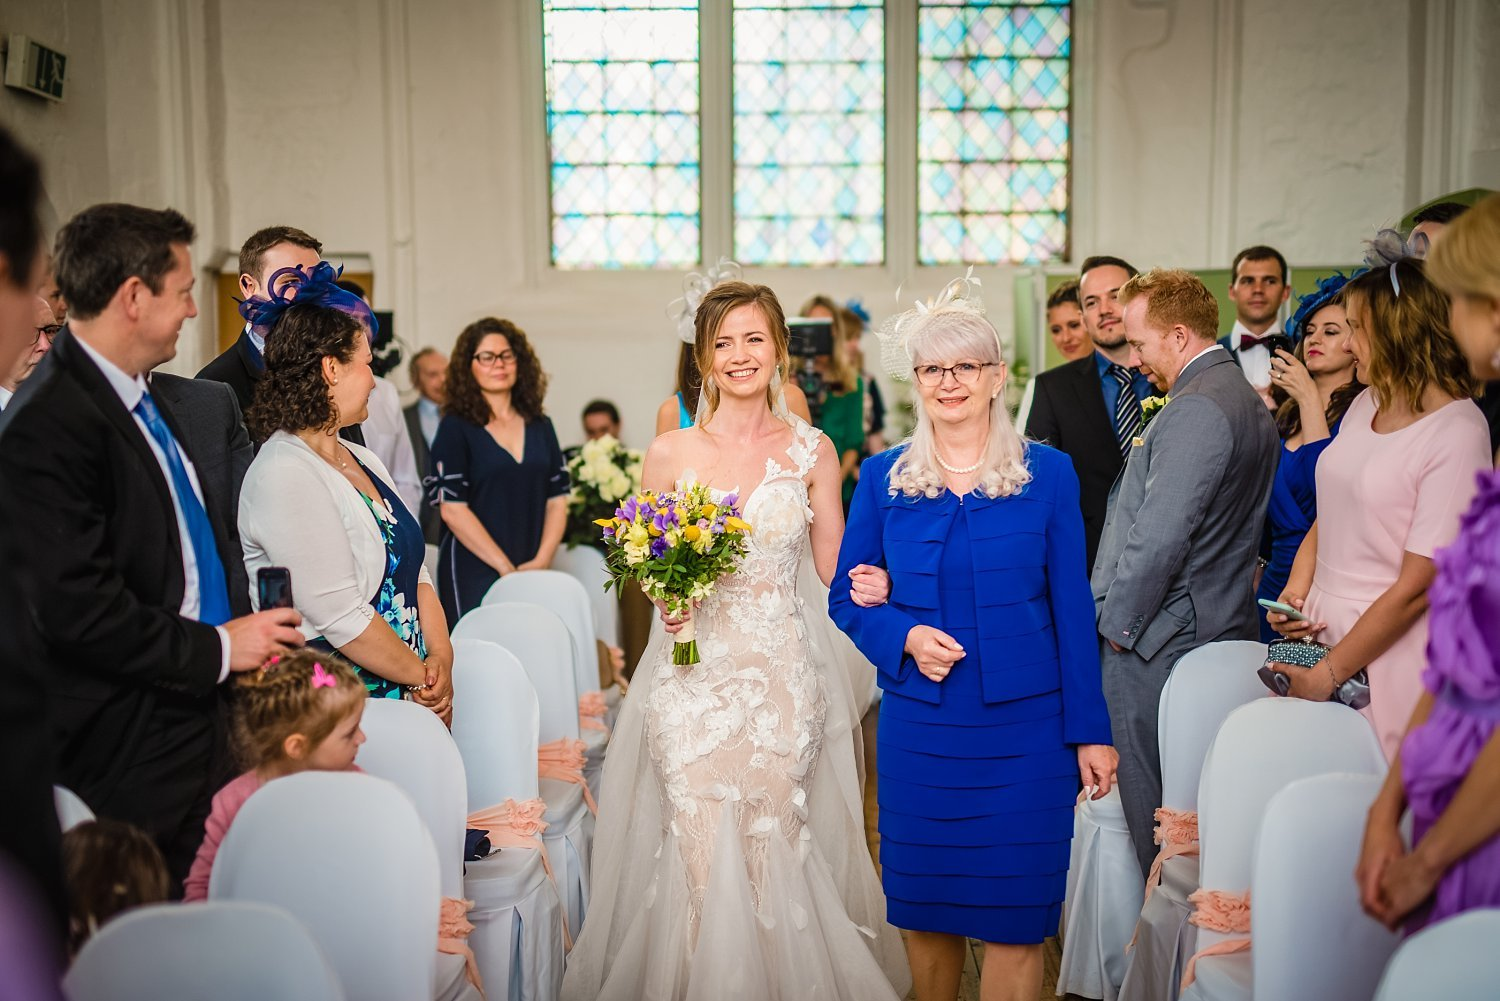 Fun-Filled wedding in Pembroke Lodge - bride and mother of the bride are walking down the aisle